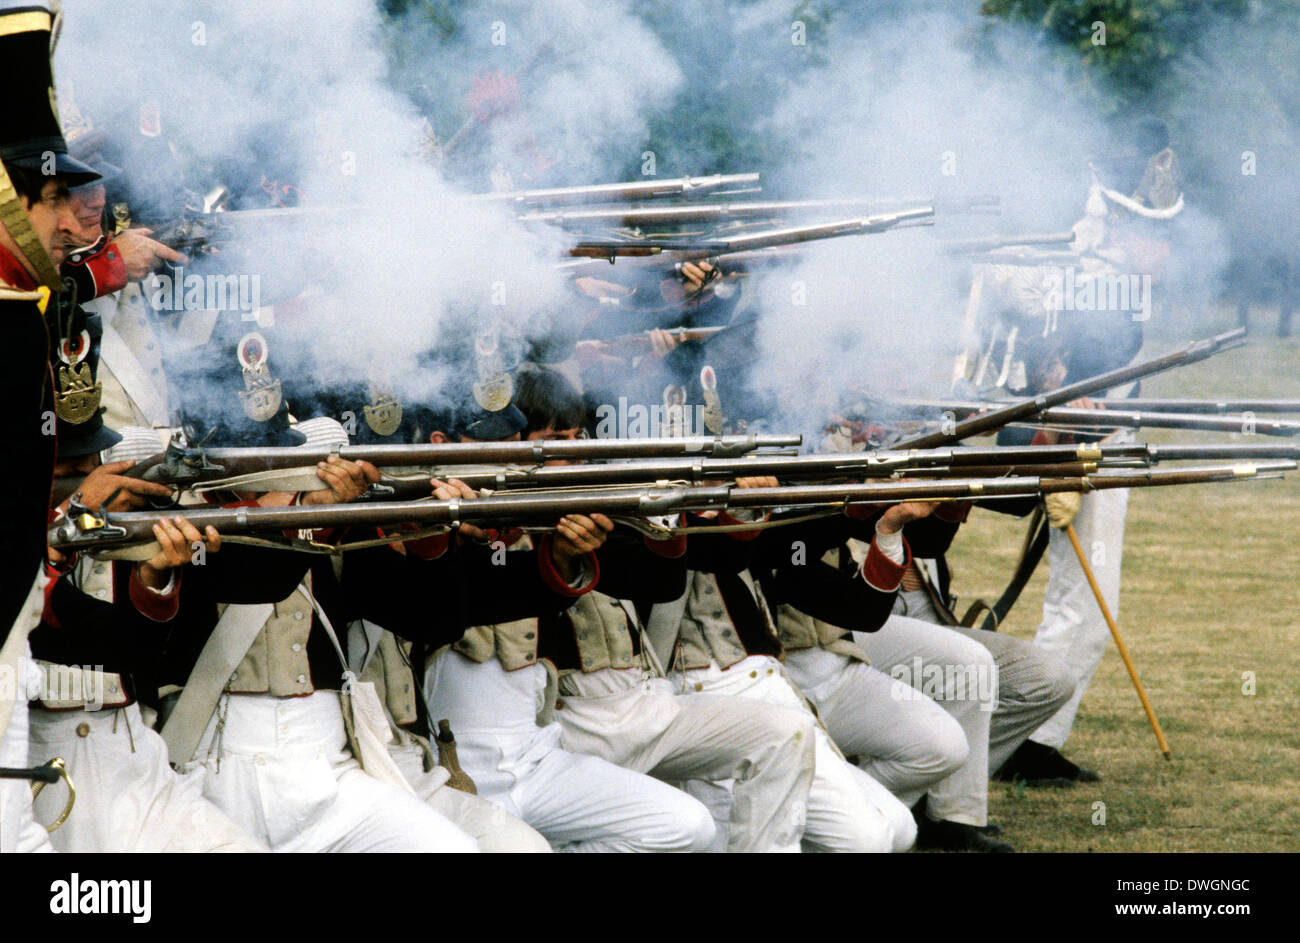 French Napoleonic riflemen soldiers firing muskets in battle, 1815, as deployed at Battle of Waterloo, historical re-enactment - Stock Image